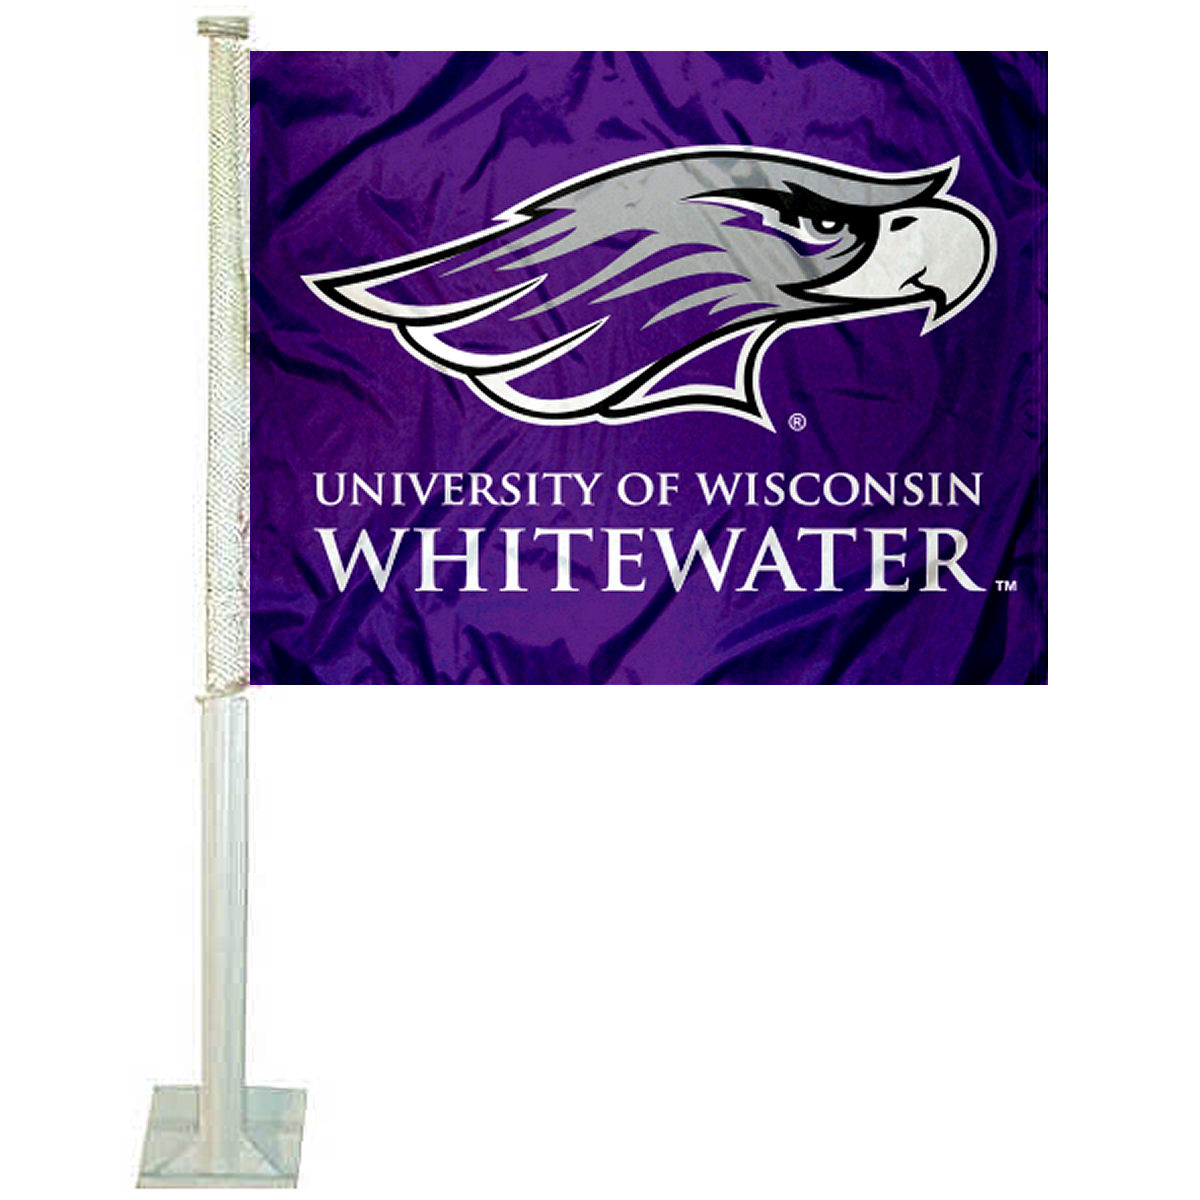 "University of Wisconsin Whitewater 12"" x 15"" Car Flag"